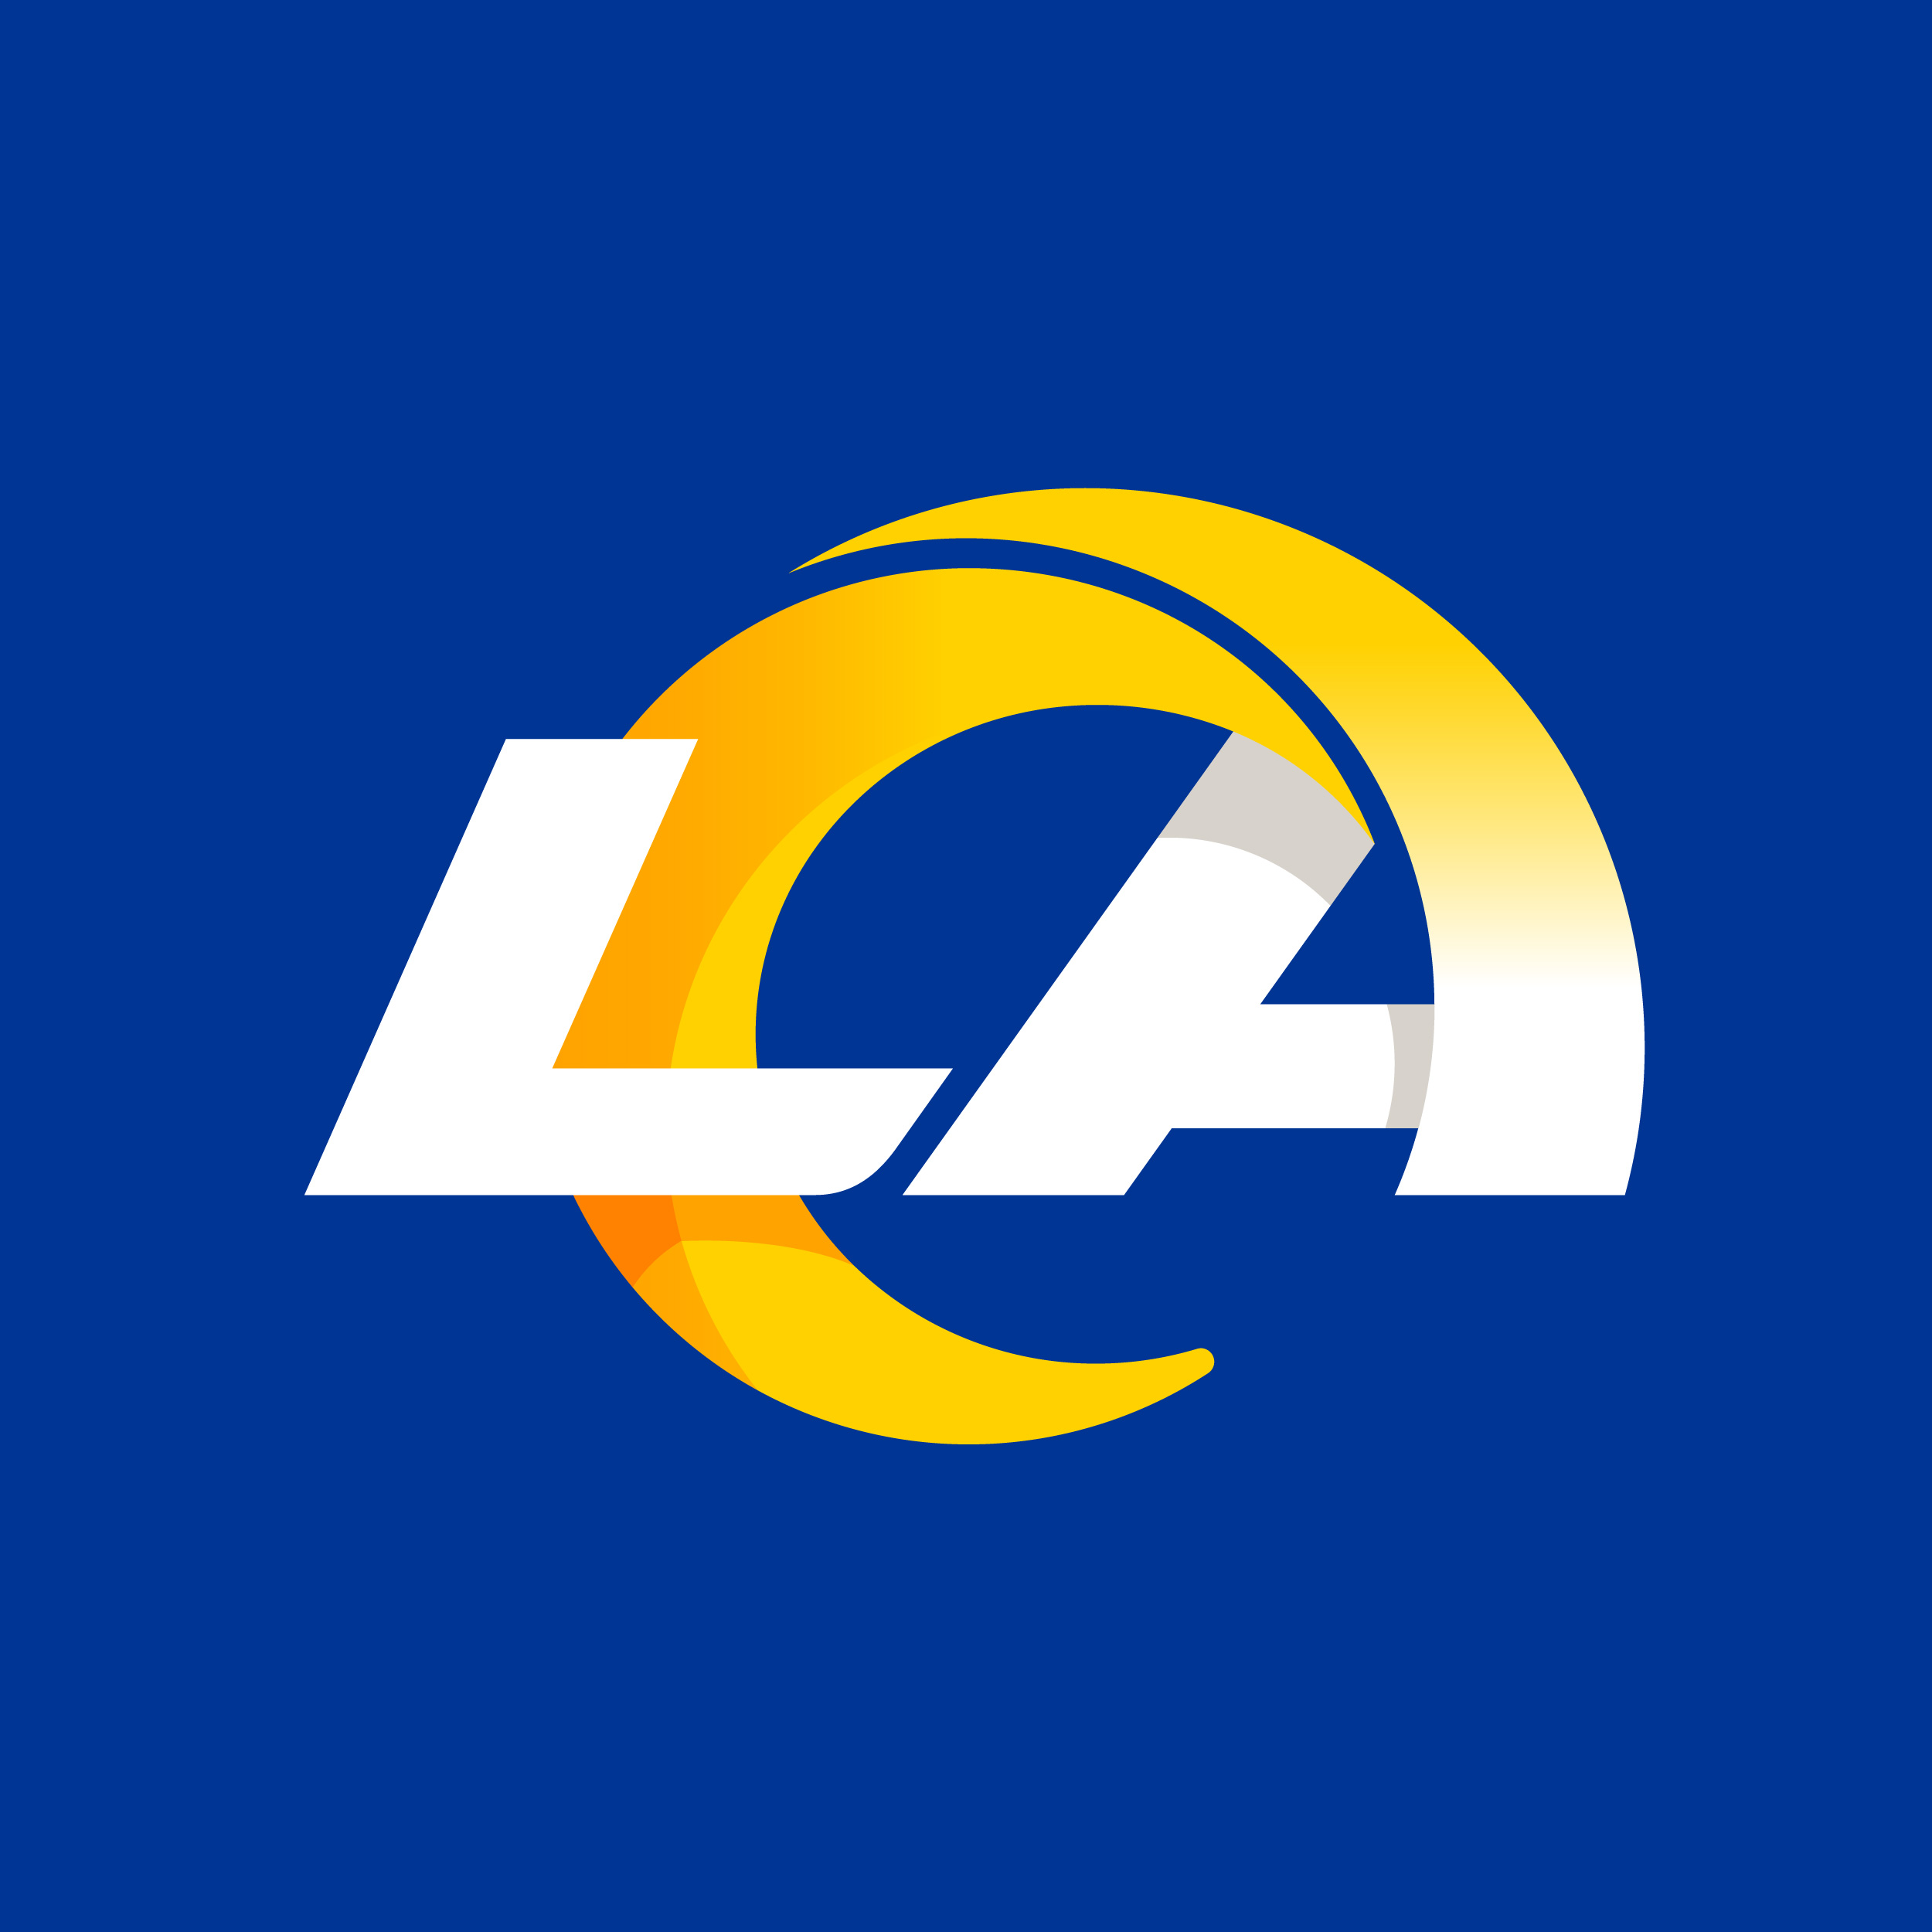 New Logos for Los Angeles Rams by Nike GIG